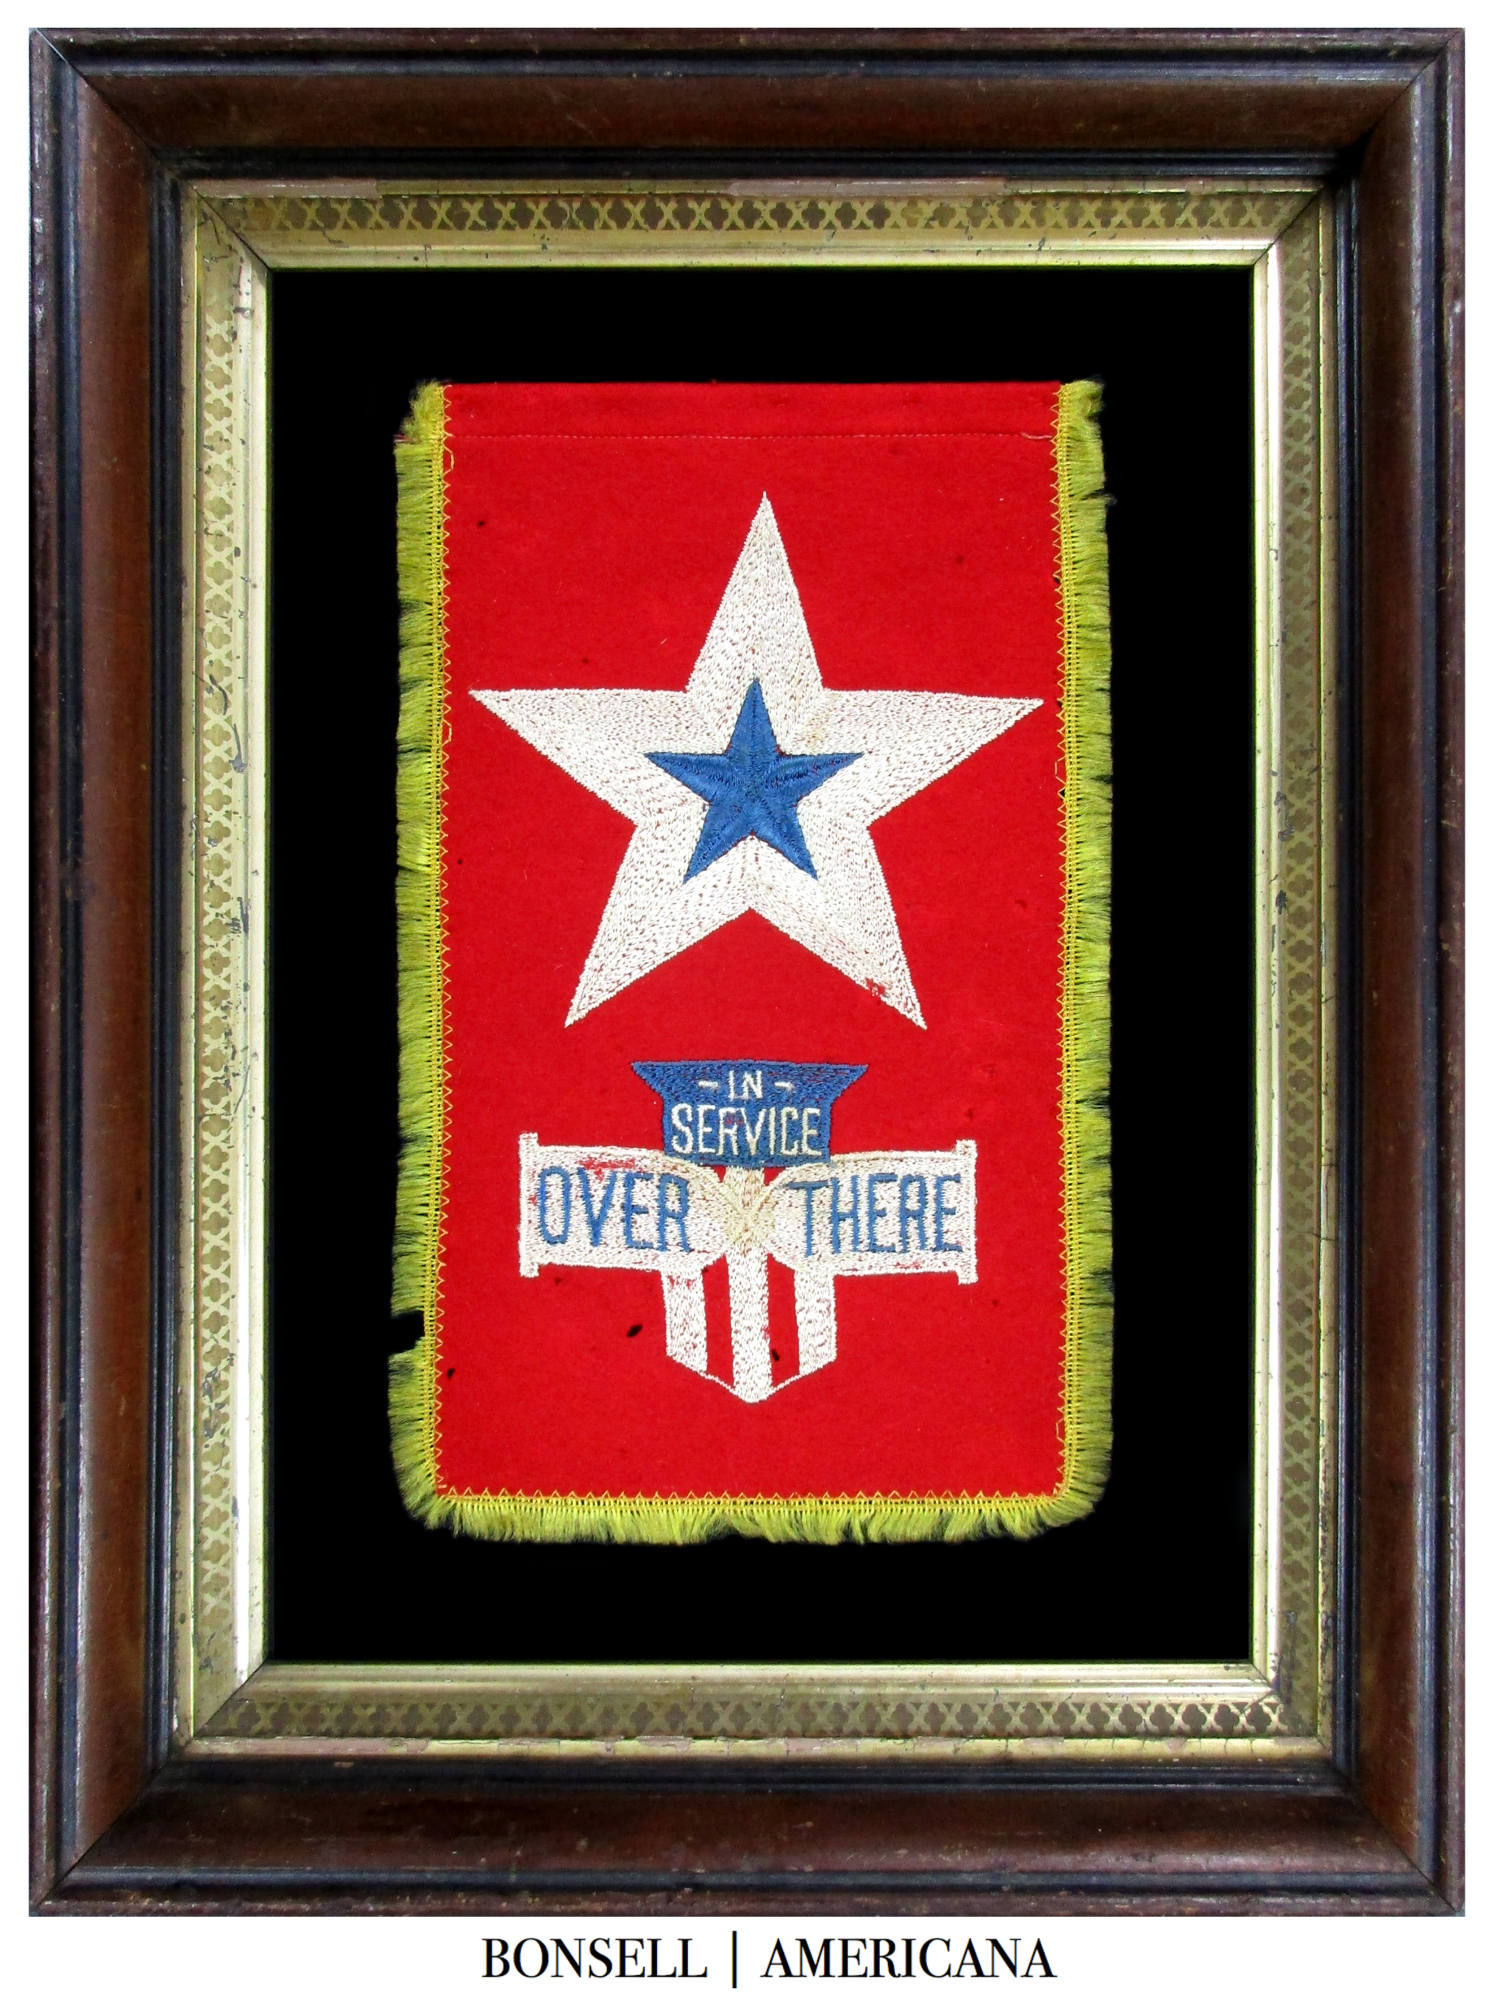 Antique American Son in Service Flag with Embroidered Stars and Text